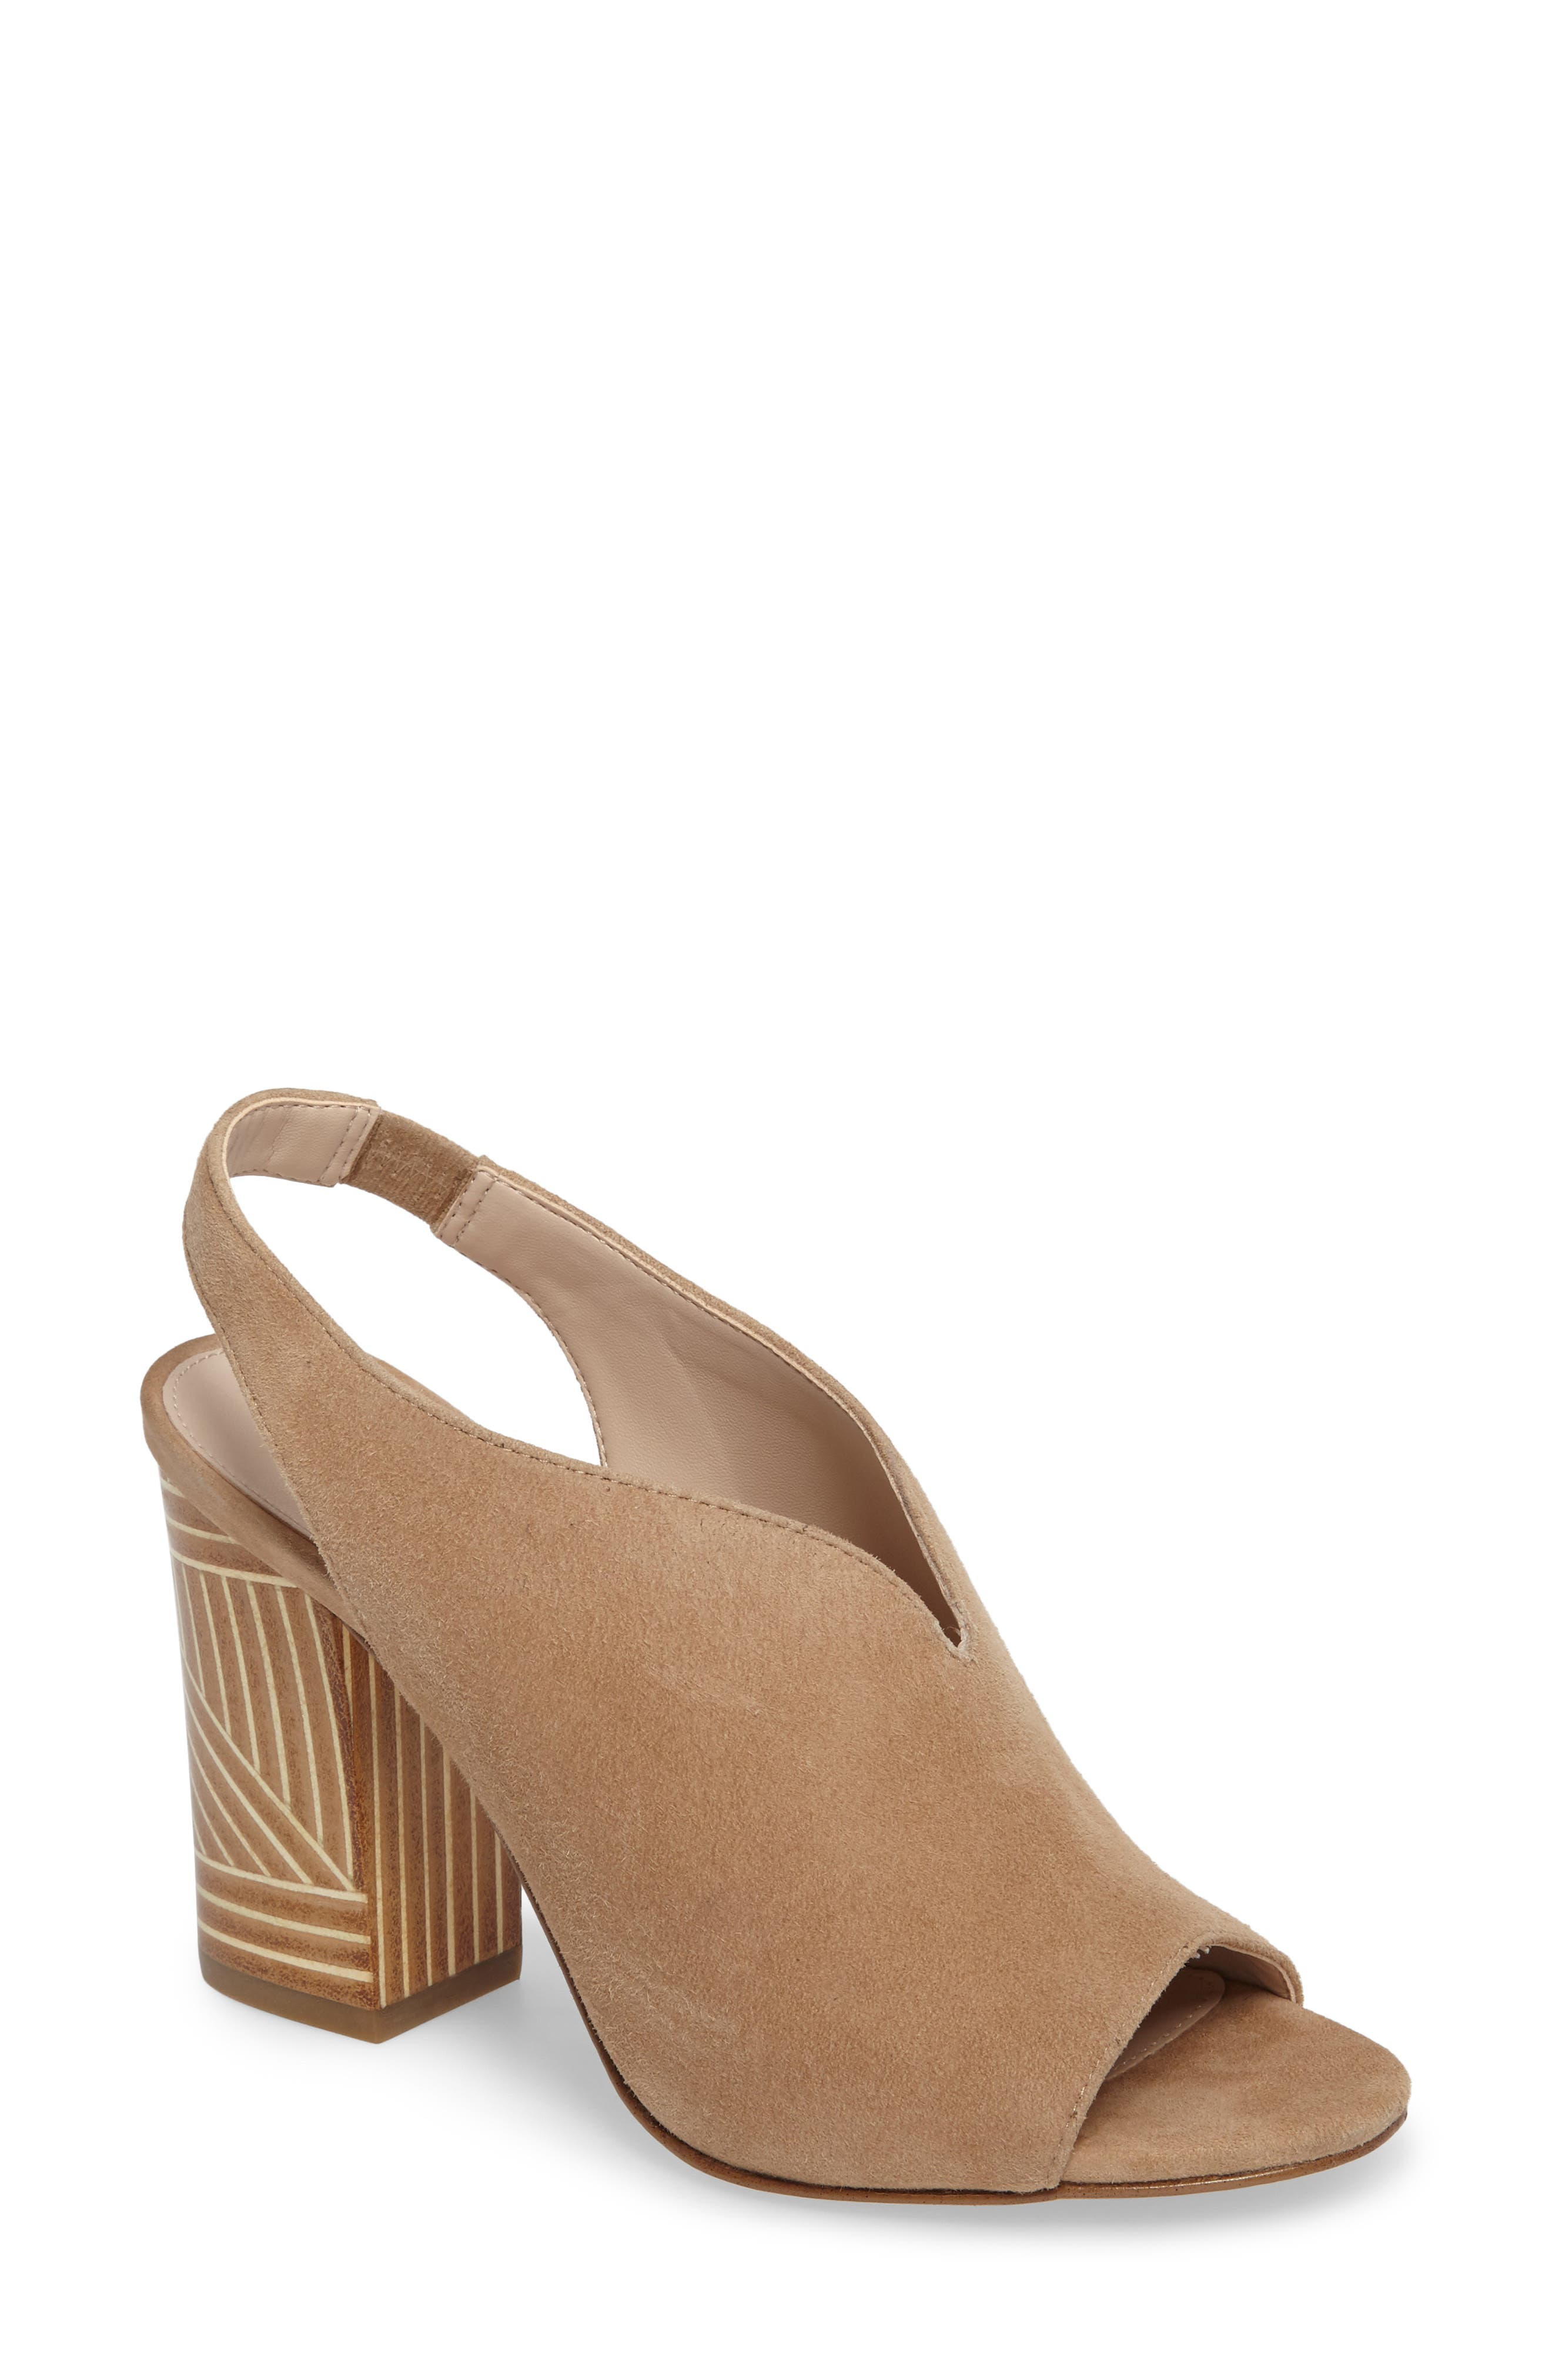 Alternate Image 1 Selected - Pelle Moda Madra Slingback Sandal (Women)